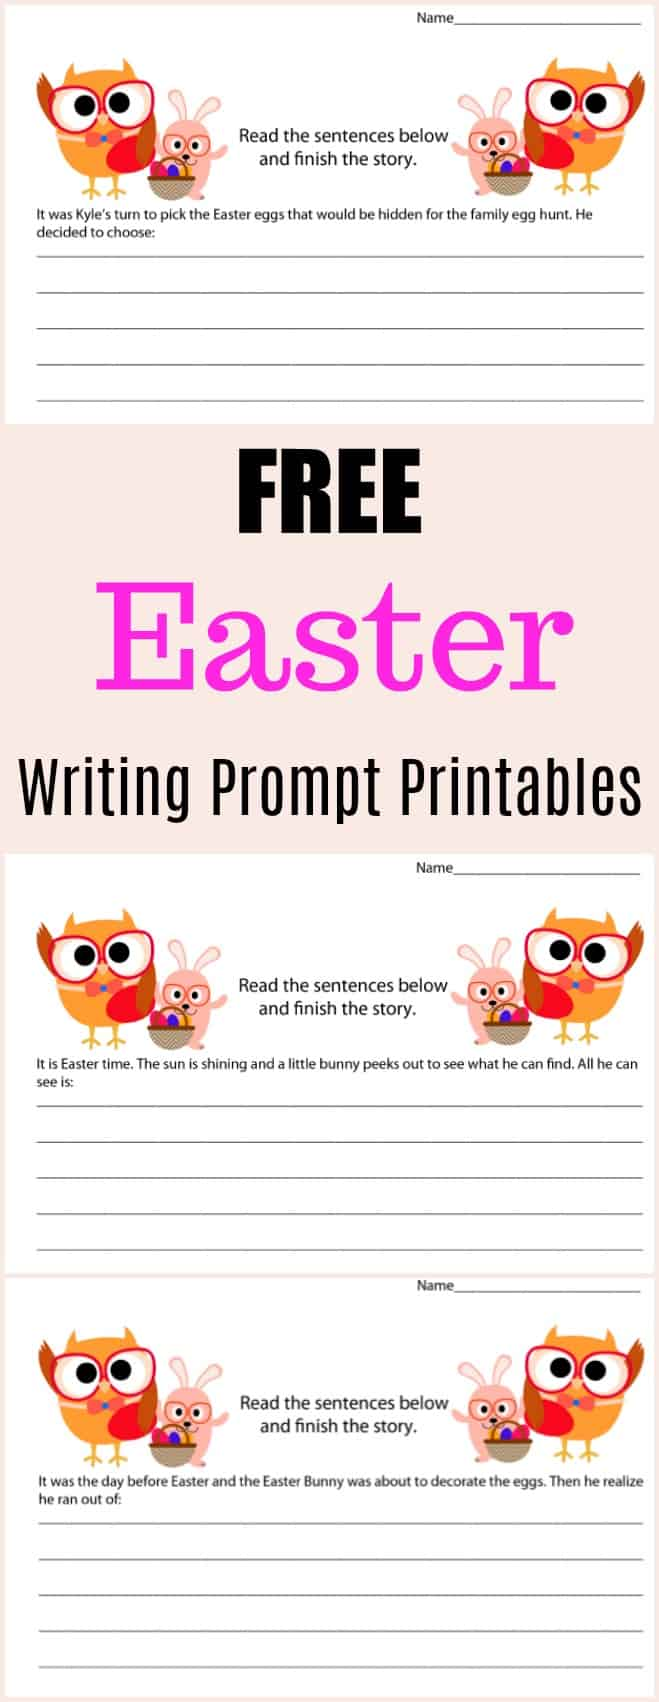 Free Easter Writing Prompt Printables - #writing #writingprompt #holiday #printable #freeprintable #education #edchat #homeschool #homeschooling #easter #easterprintable